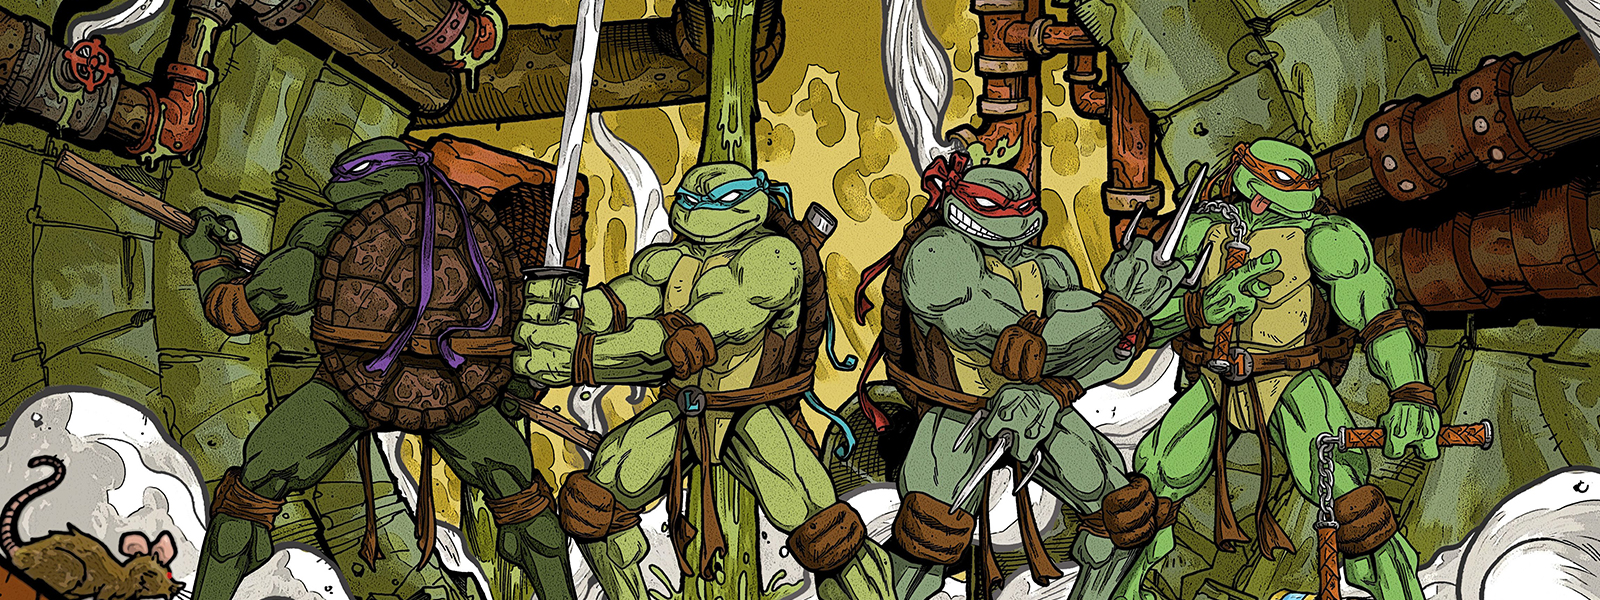 tmnt idw reading order banner art